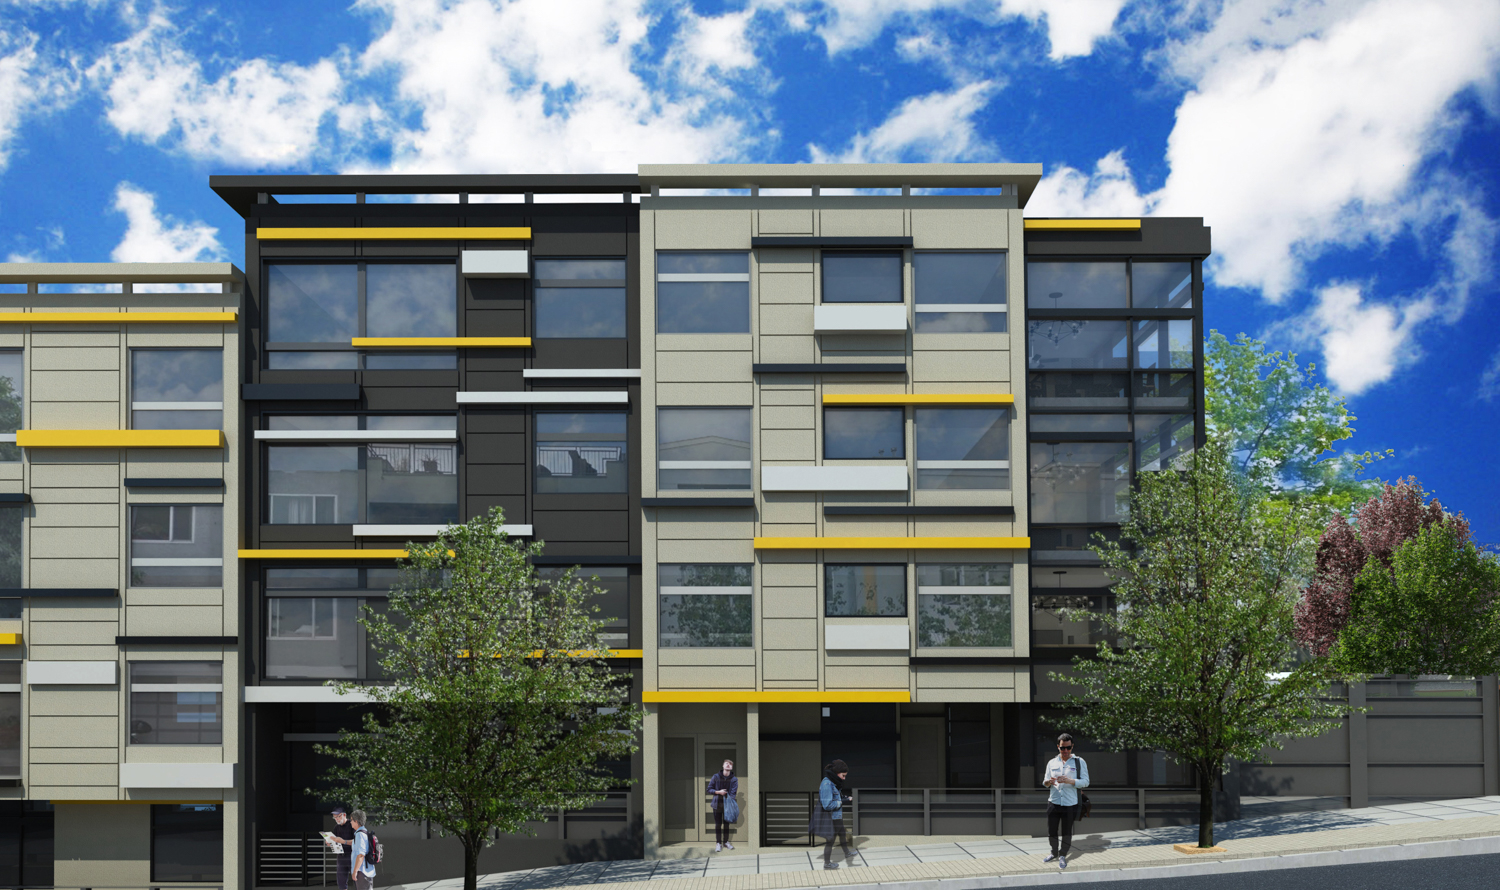 249 Pennsylvania Avenue four story proposal facade elevation, rendering courtesy project website